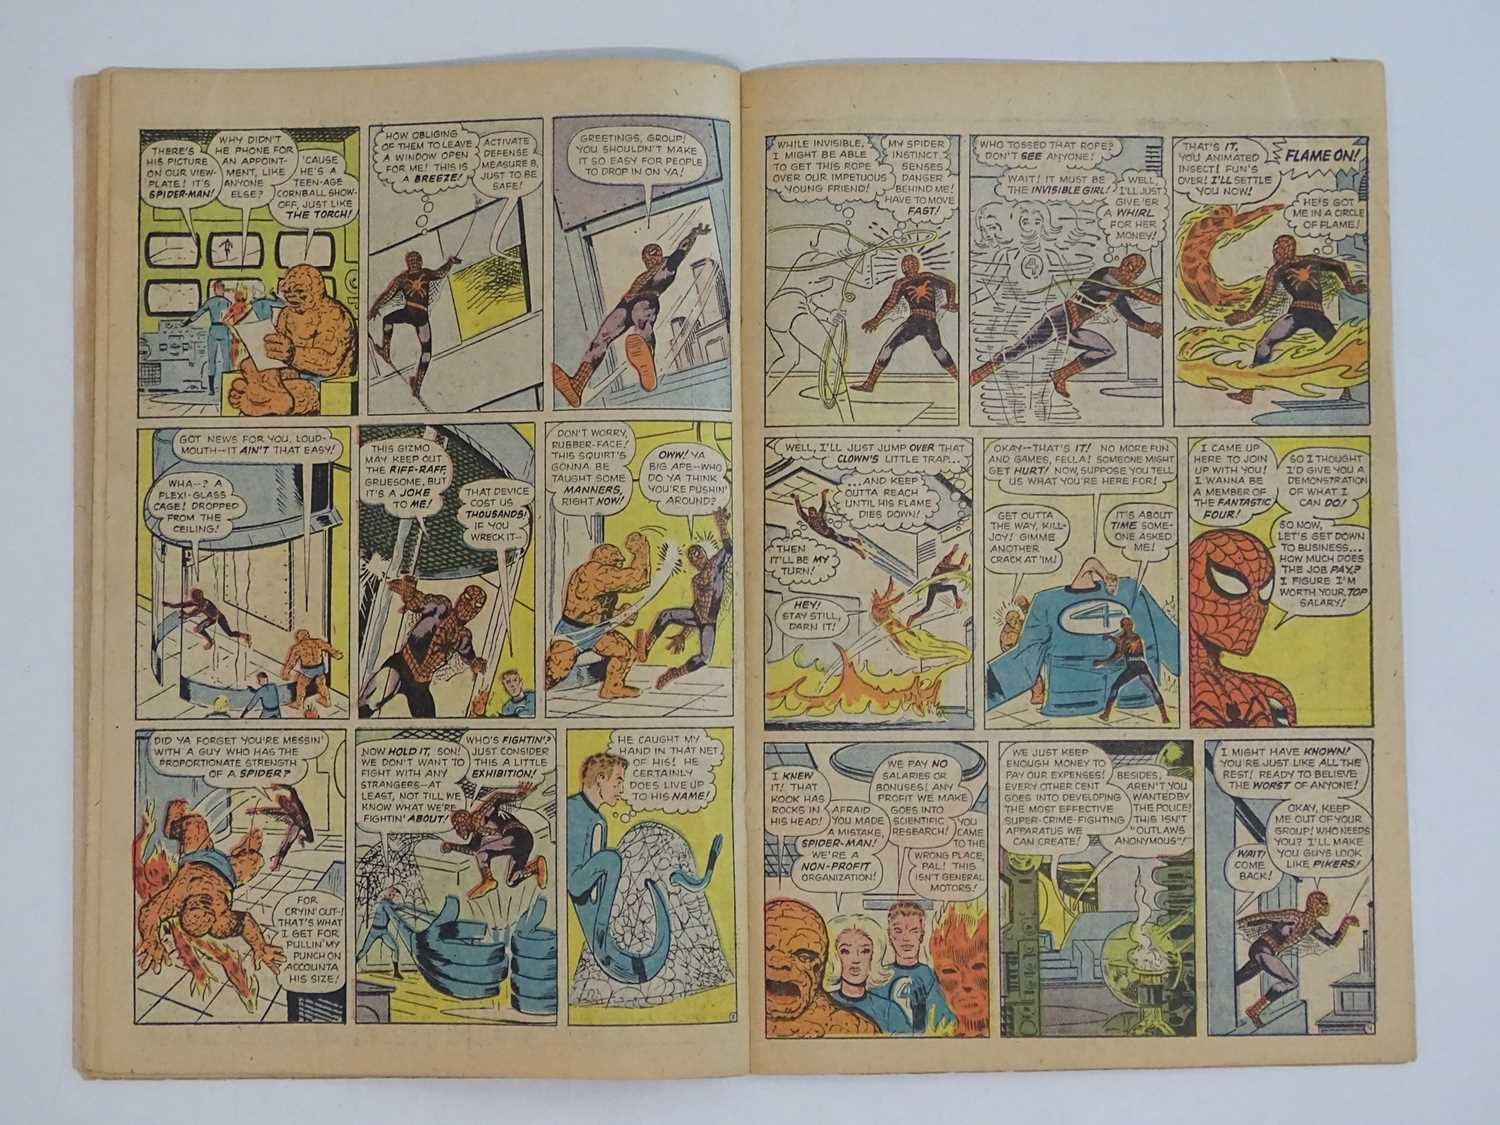 AMAZING SPIDER-MAN #1 - (1963 - MARVEL - UK Price Variant) - First appearance of Spider-Man un his - Image 21 of 27